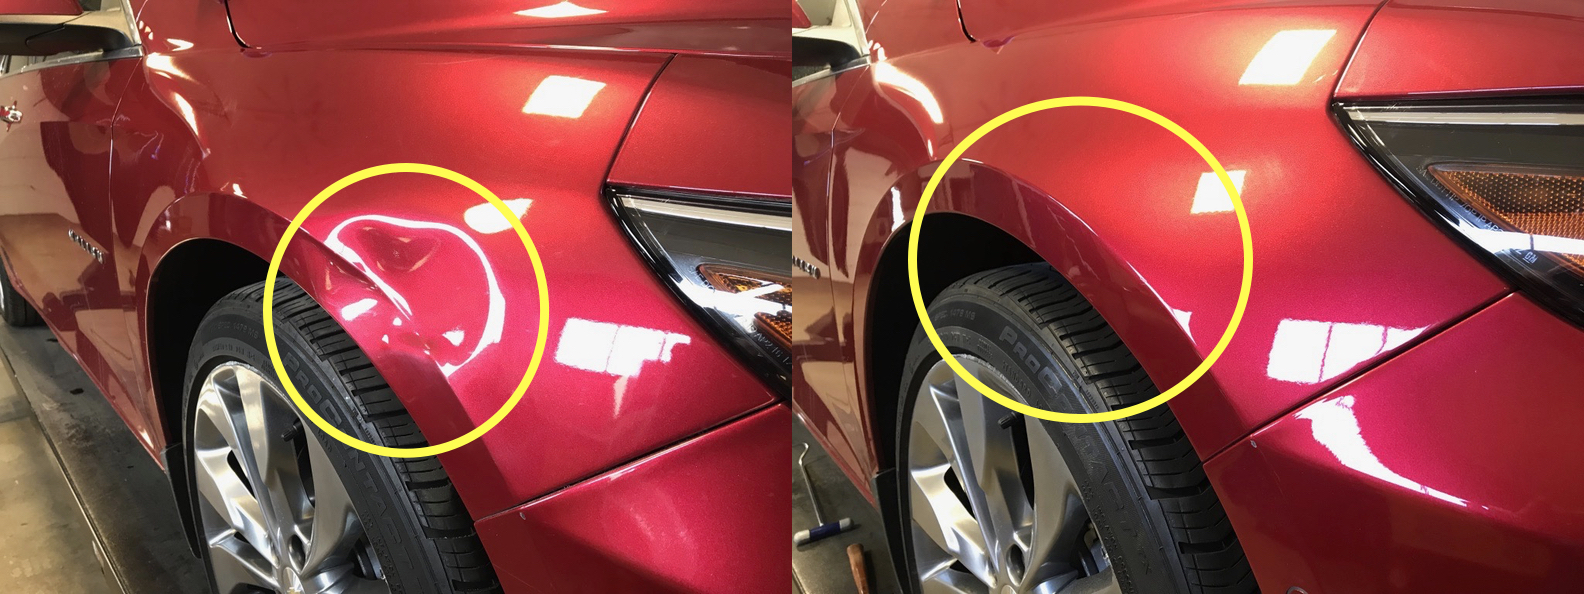 BEFORE & AFTER: LARGE DENT ON FENDER THROUGH BODY LINE; DAMAGE REMOVED & REPAIRED WITH PAINTLESS DENT REPAIR BY THE DENT GUY. NO PAINT OR BODY FILLER NEEDED.